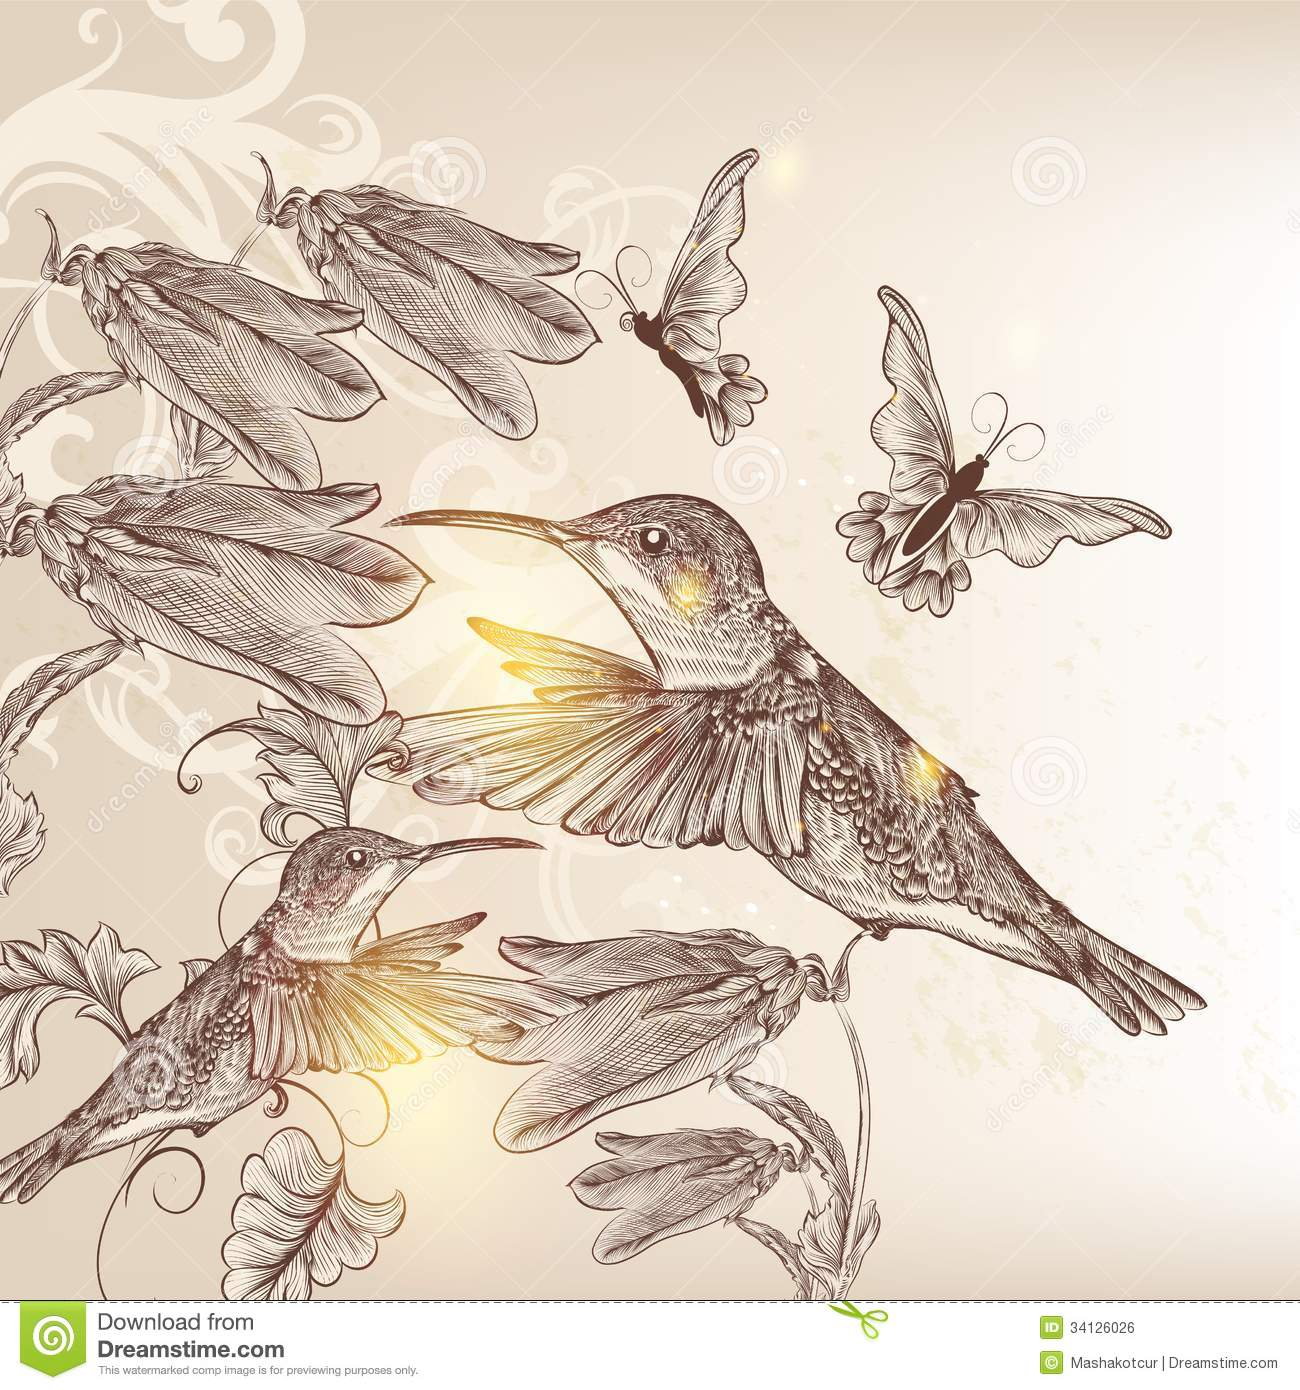 Vintage Vector Background With Human Bird Butterflies And Flowe Royalty Free Stock Image